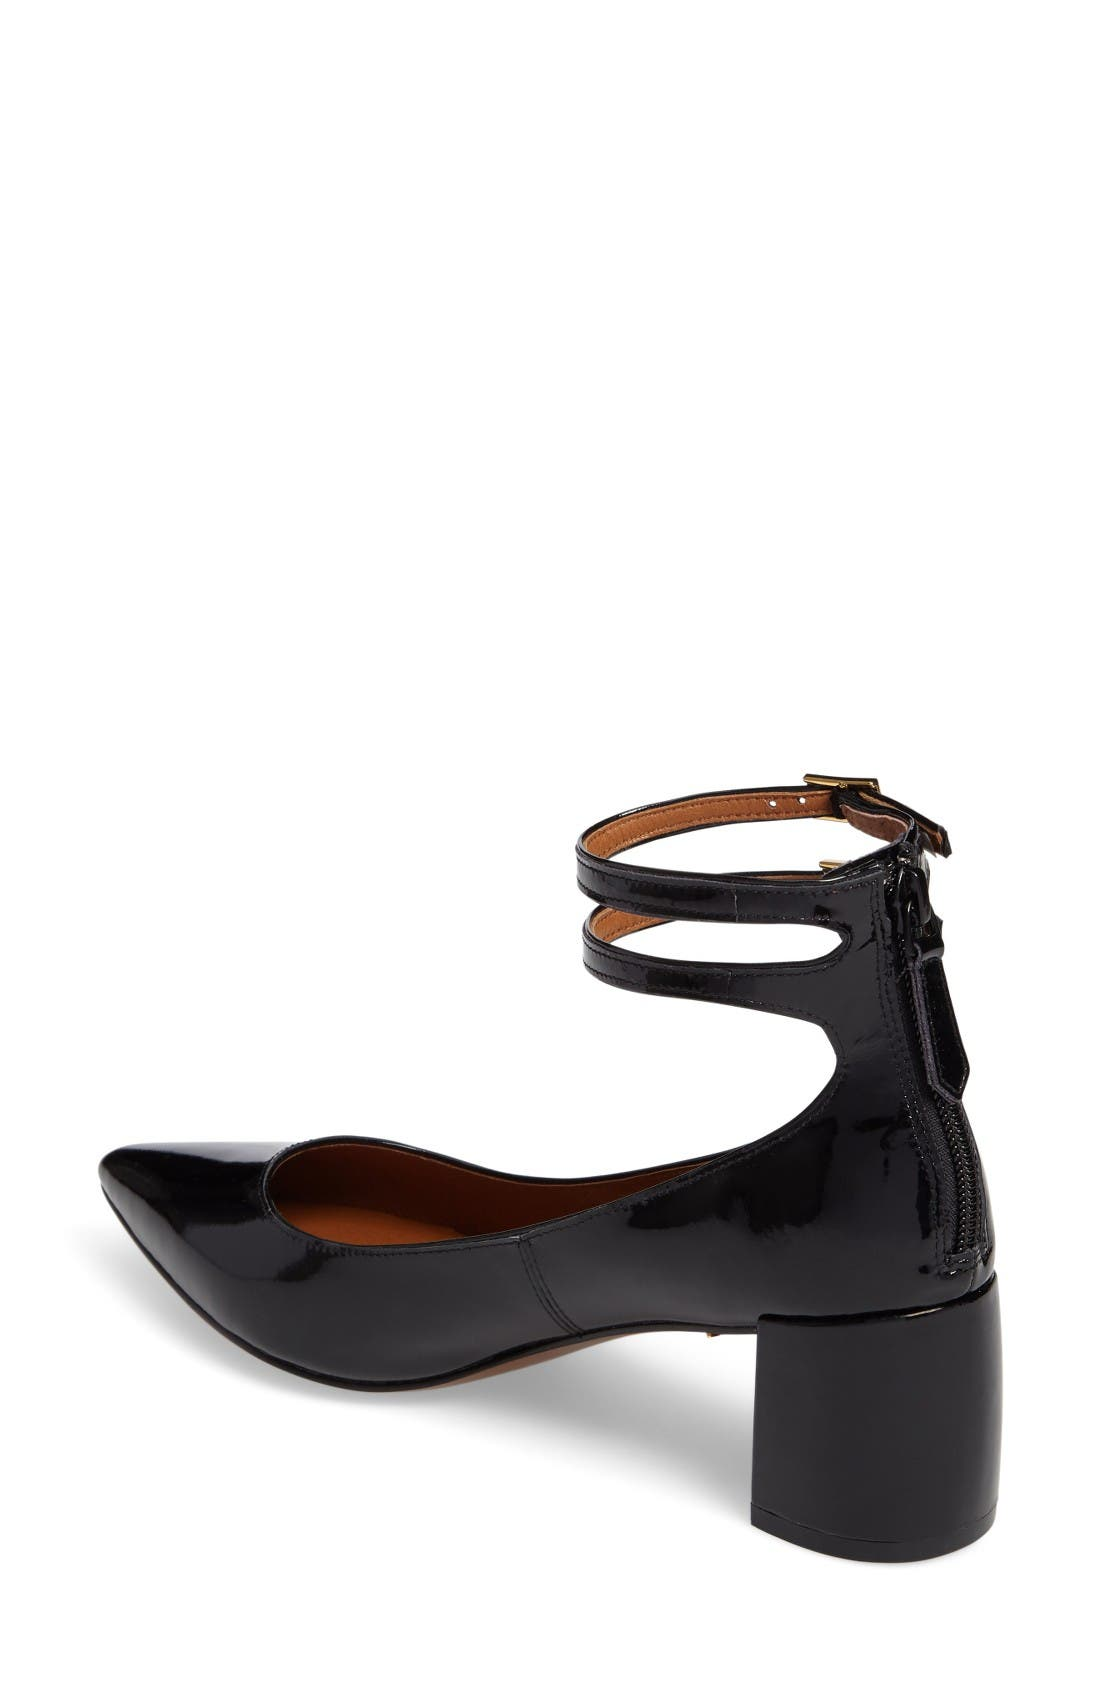 'Noel' Pointy Toe Ankle Strap Pump,                             Alternate thumbnail 2, color,                             Black Patent Leather